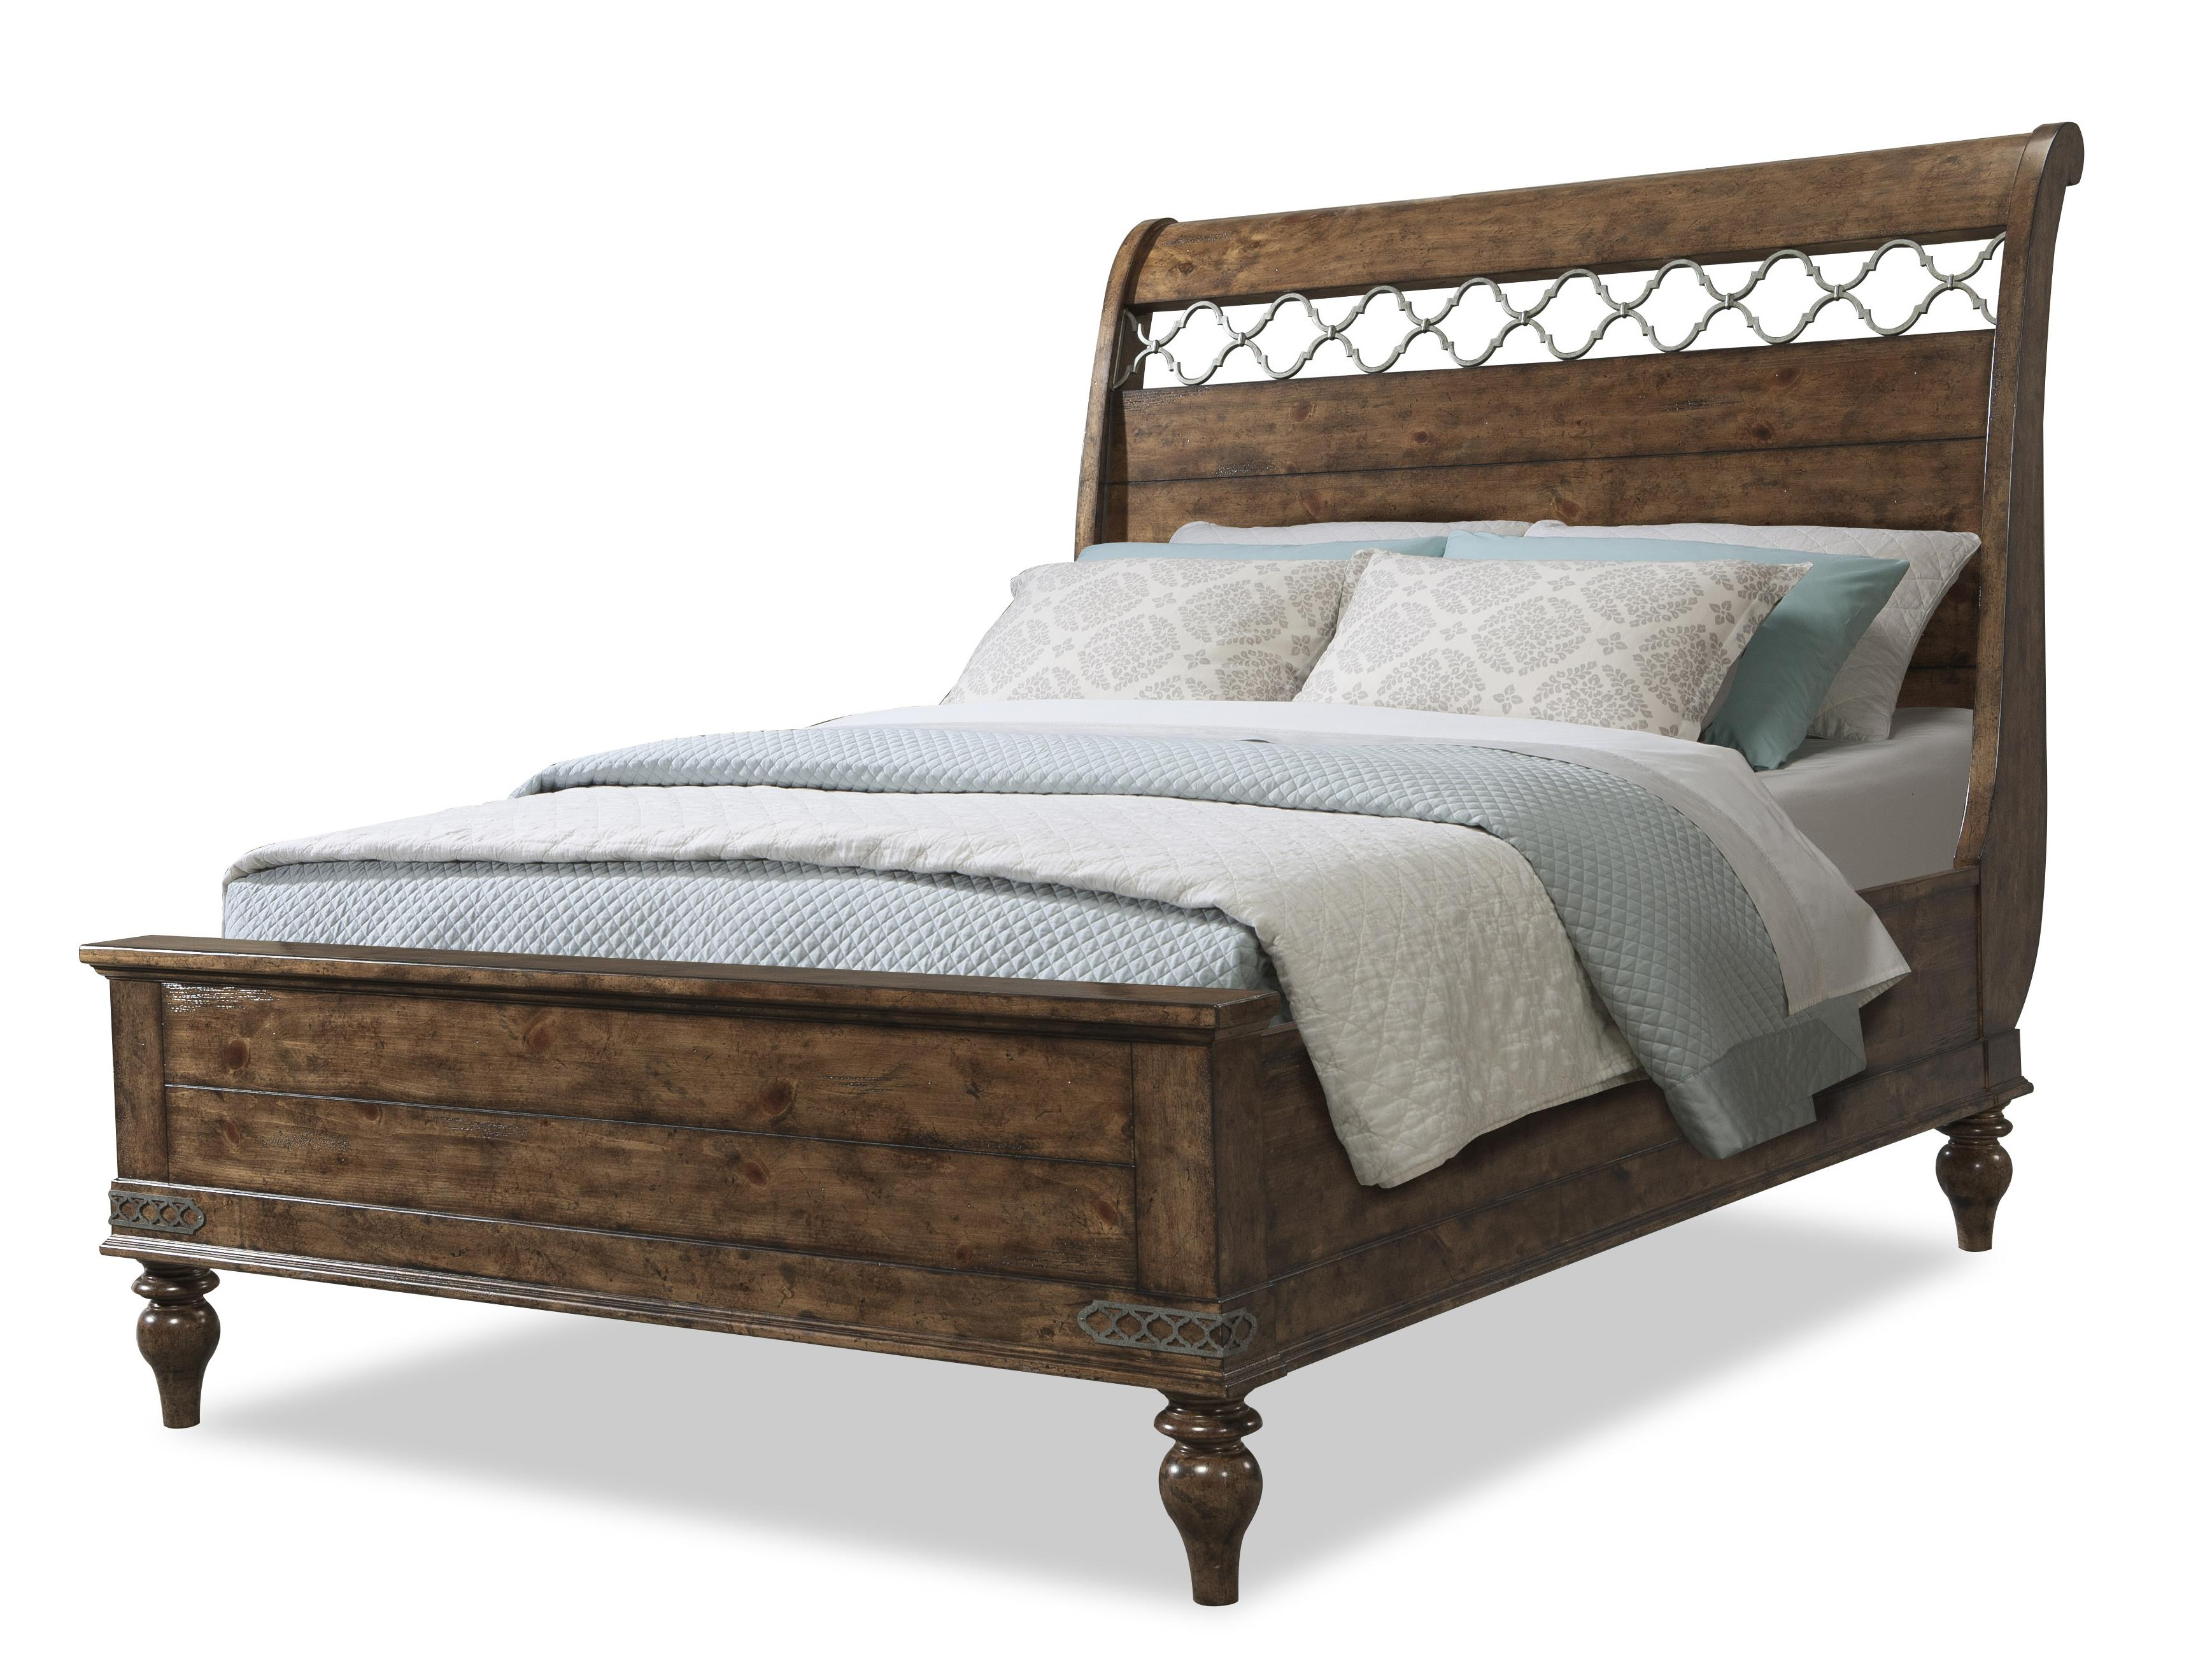 Easton Collection Farmhouse Whispering Pines Queen Sleigh Bed - Item Number: 436-250 QBED